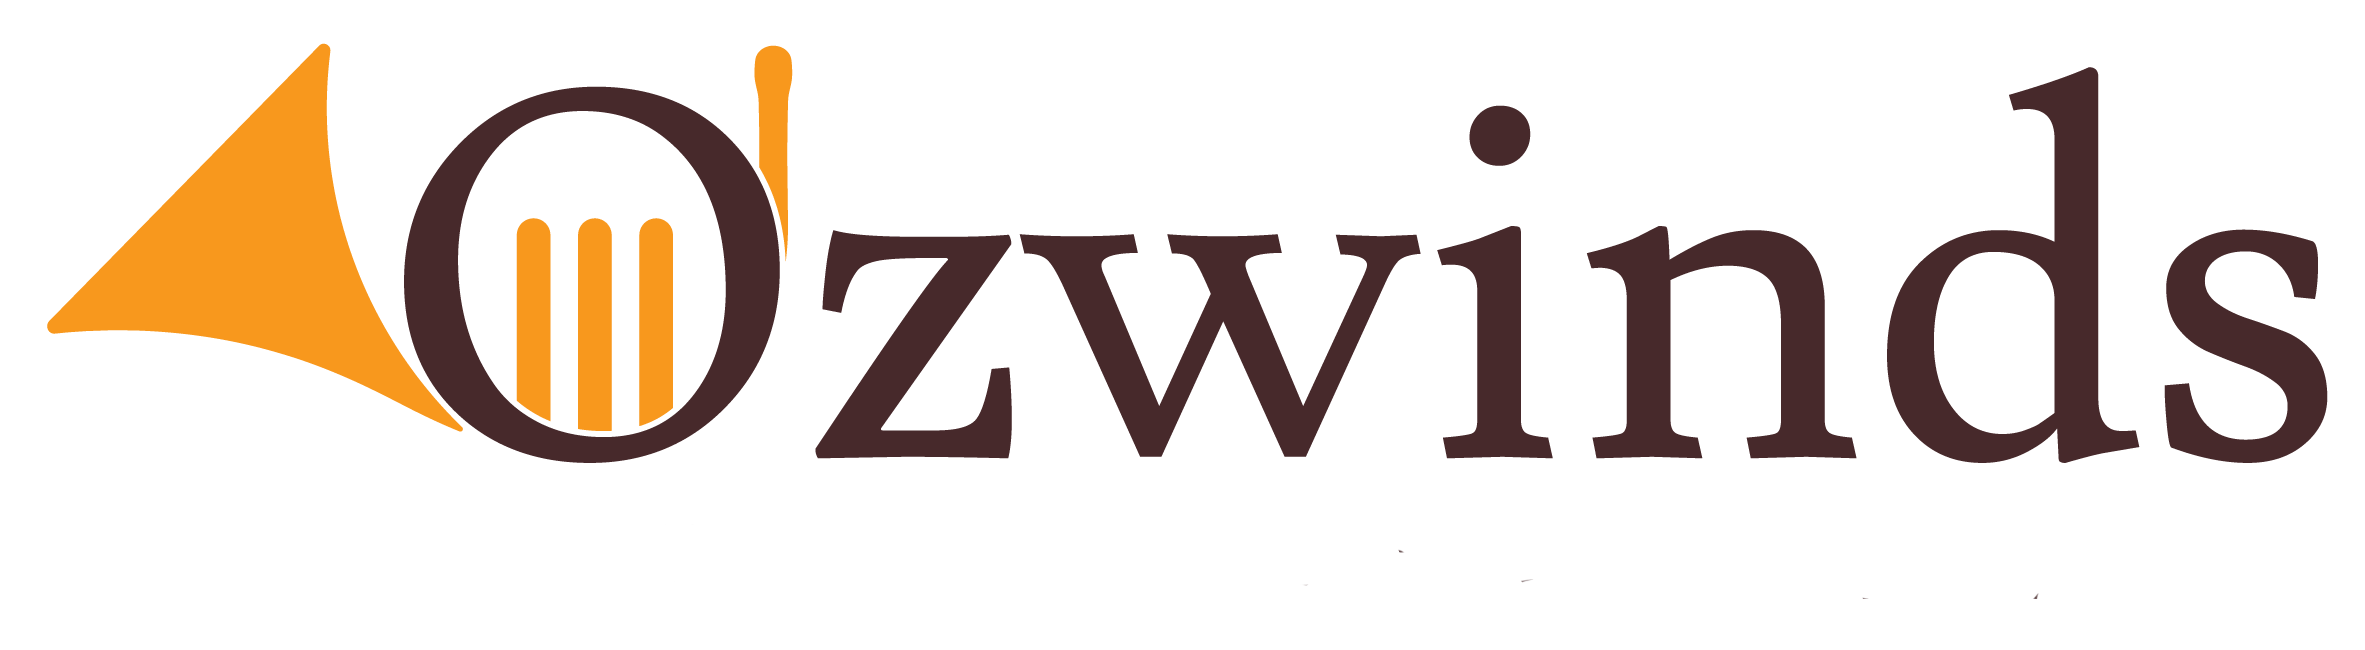 Ozwinds - Australia's Professionals for Brass and Woodwind, Orchestral Musical Instruments & More.